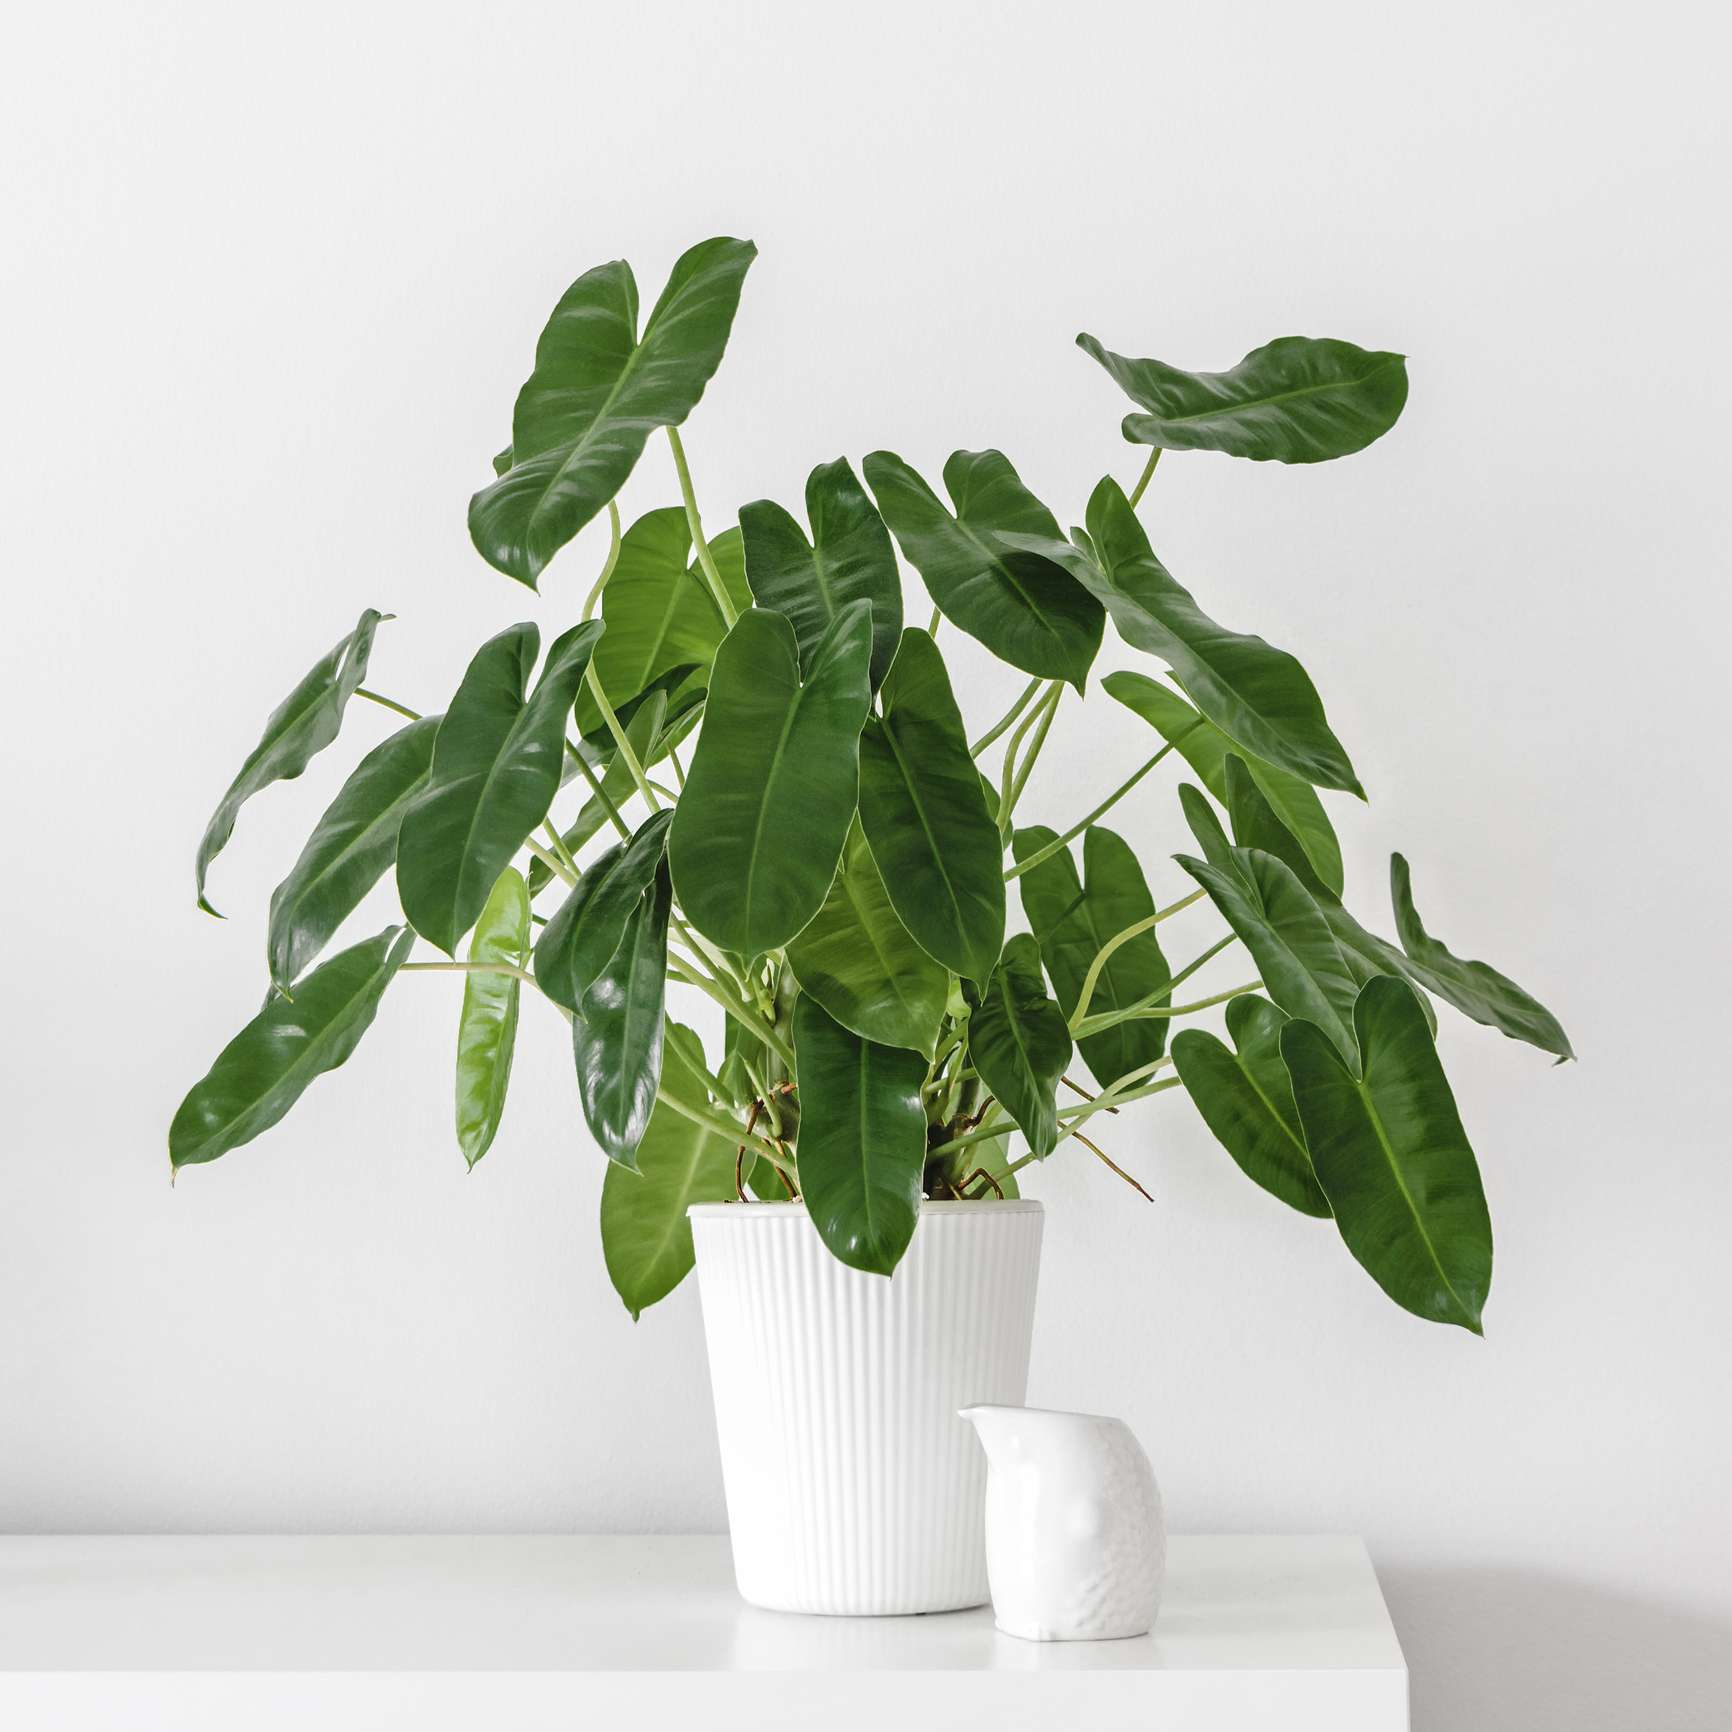 philodendron burle marx in white pot against white wall